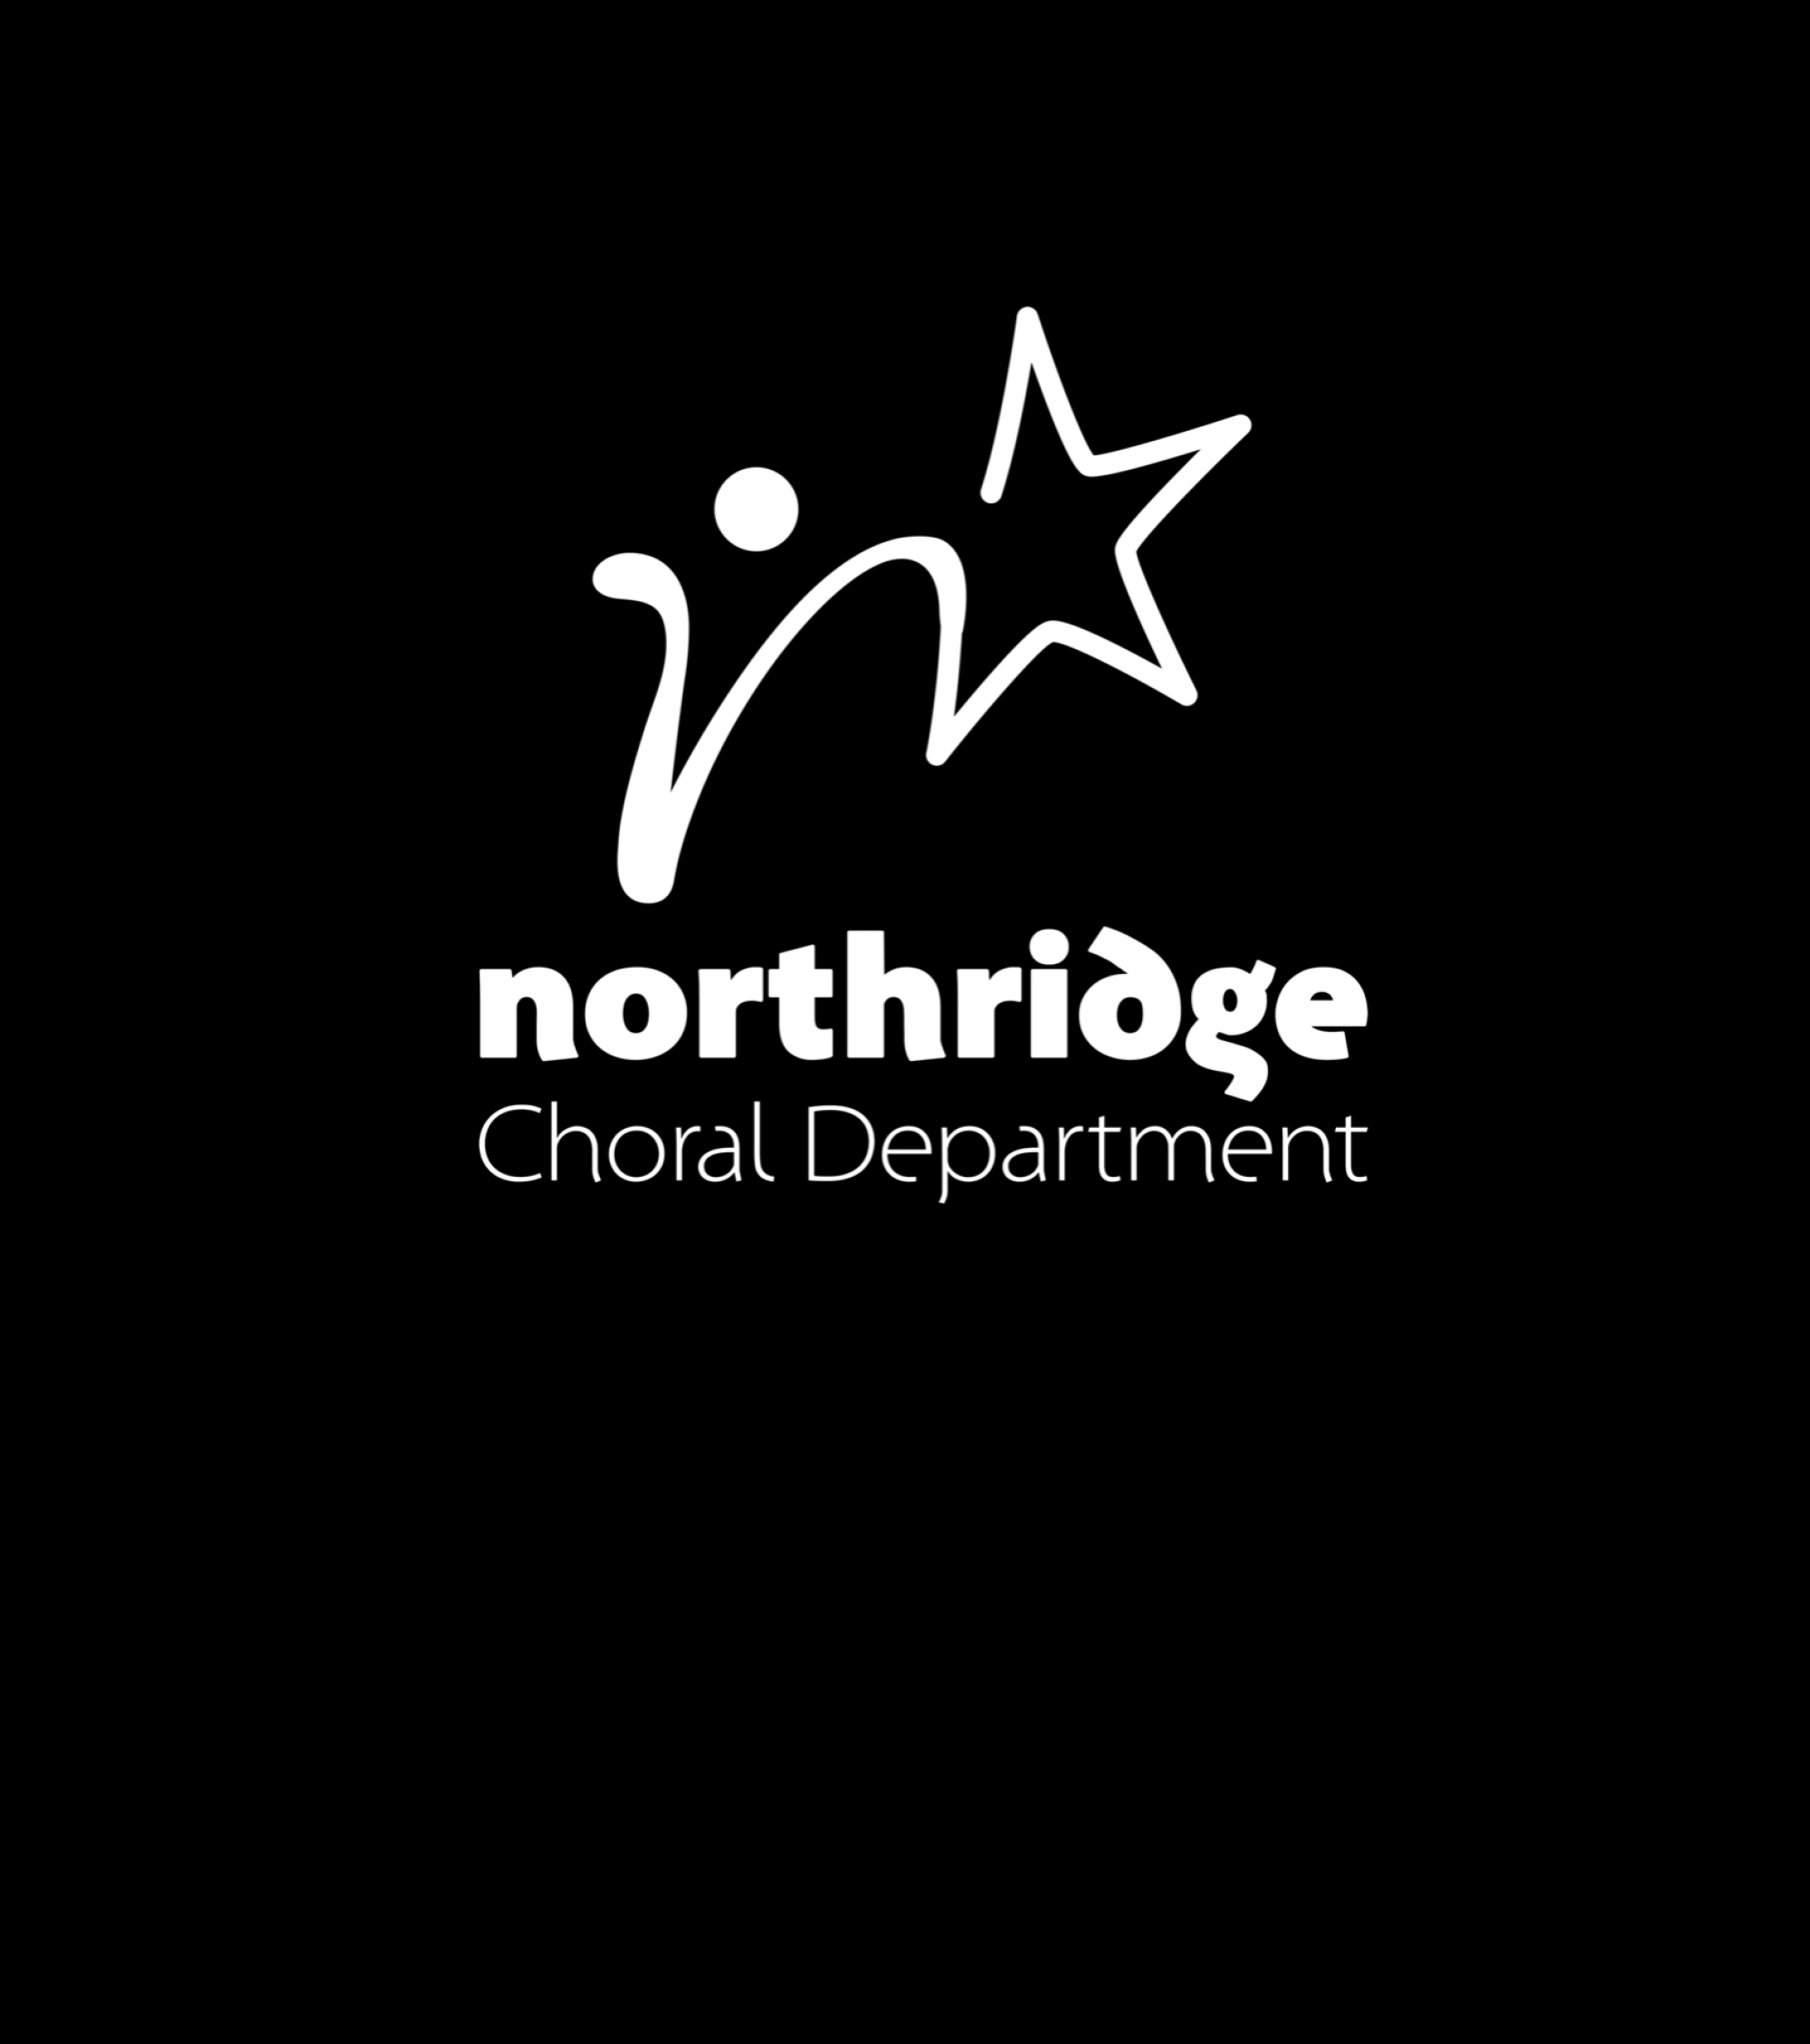 The Northridge Choral Department